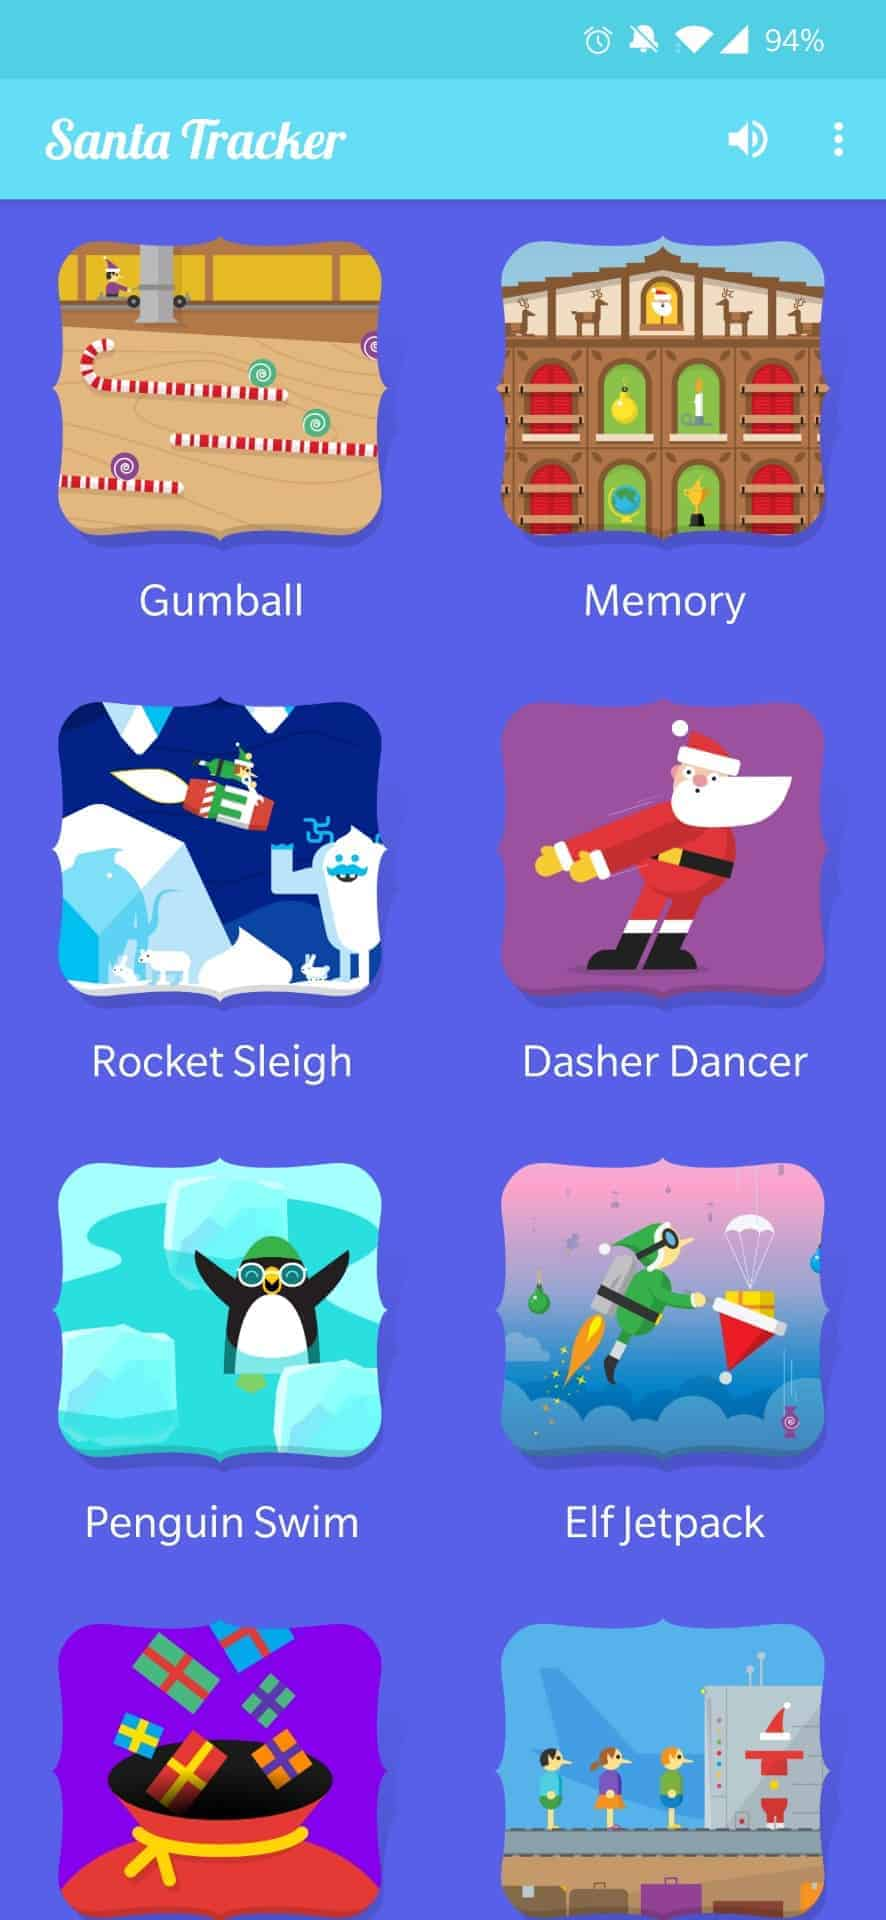 Santa Tracker App AH screenshot 2019 4